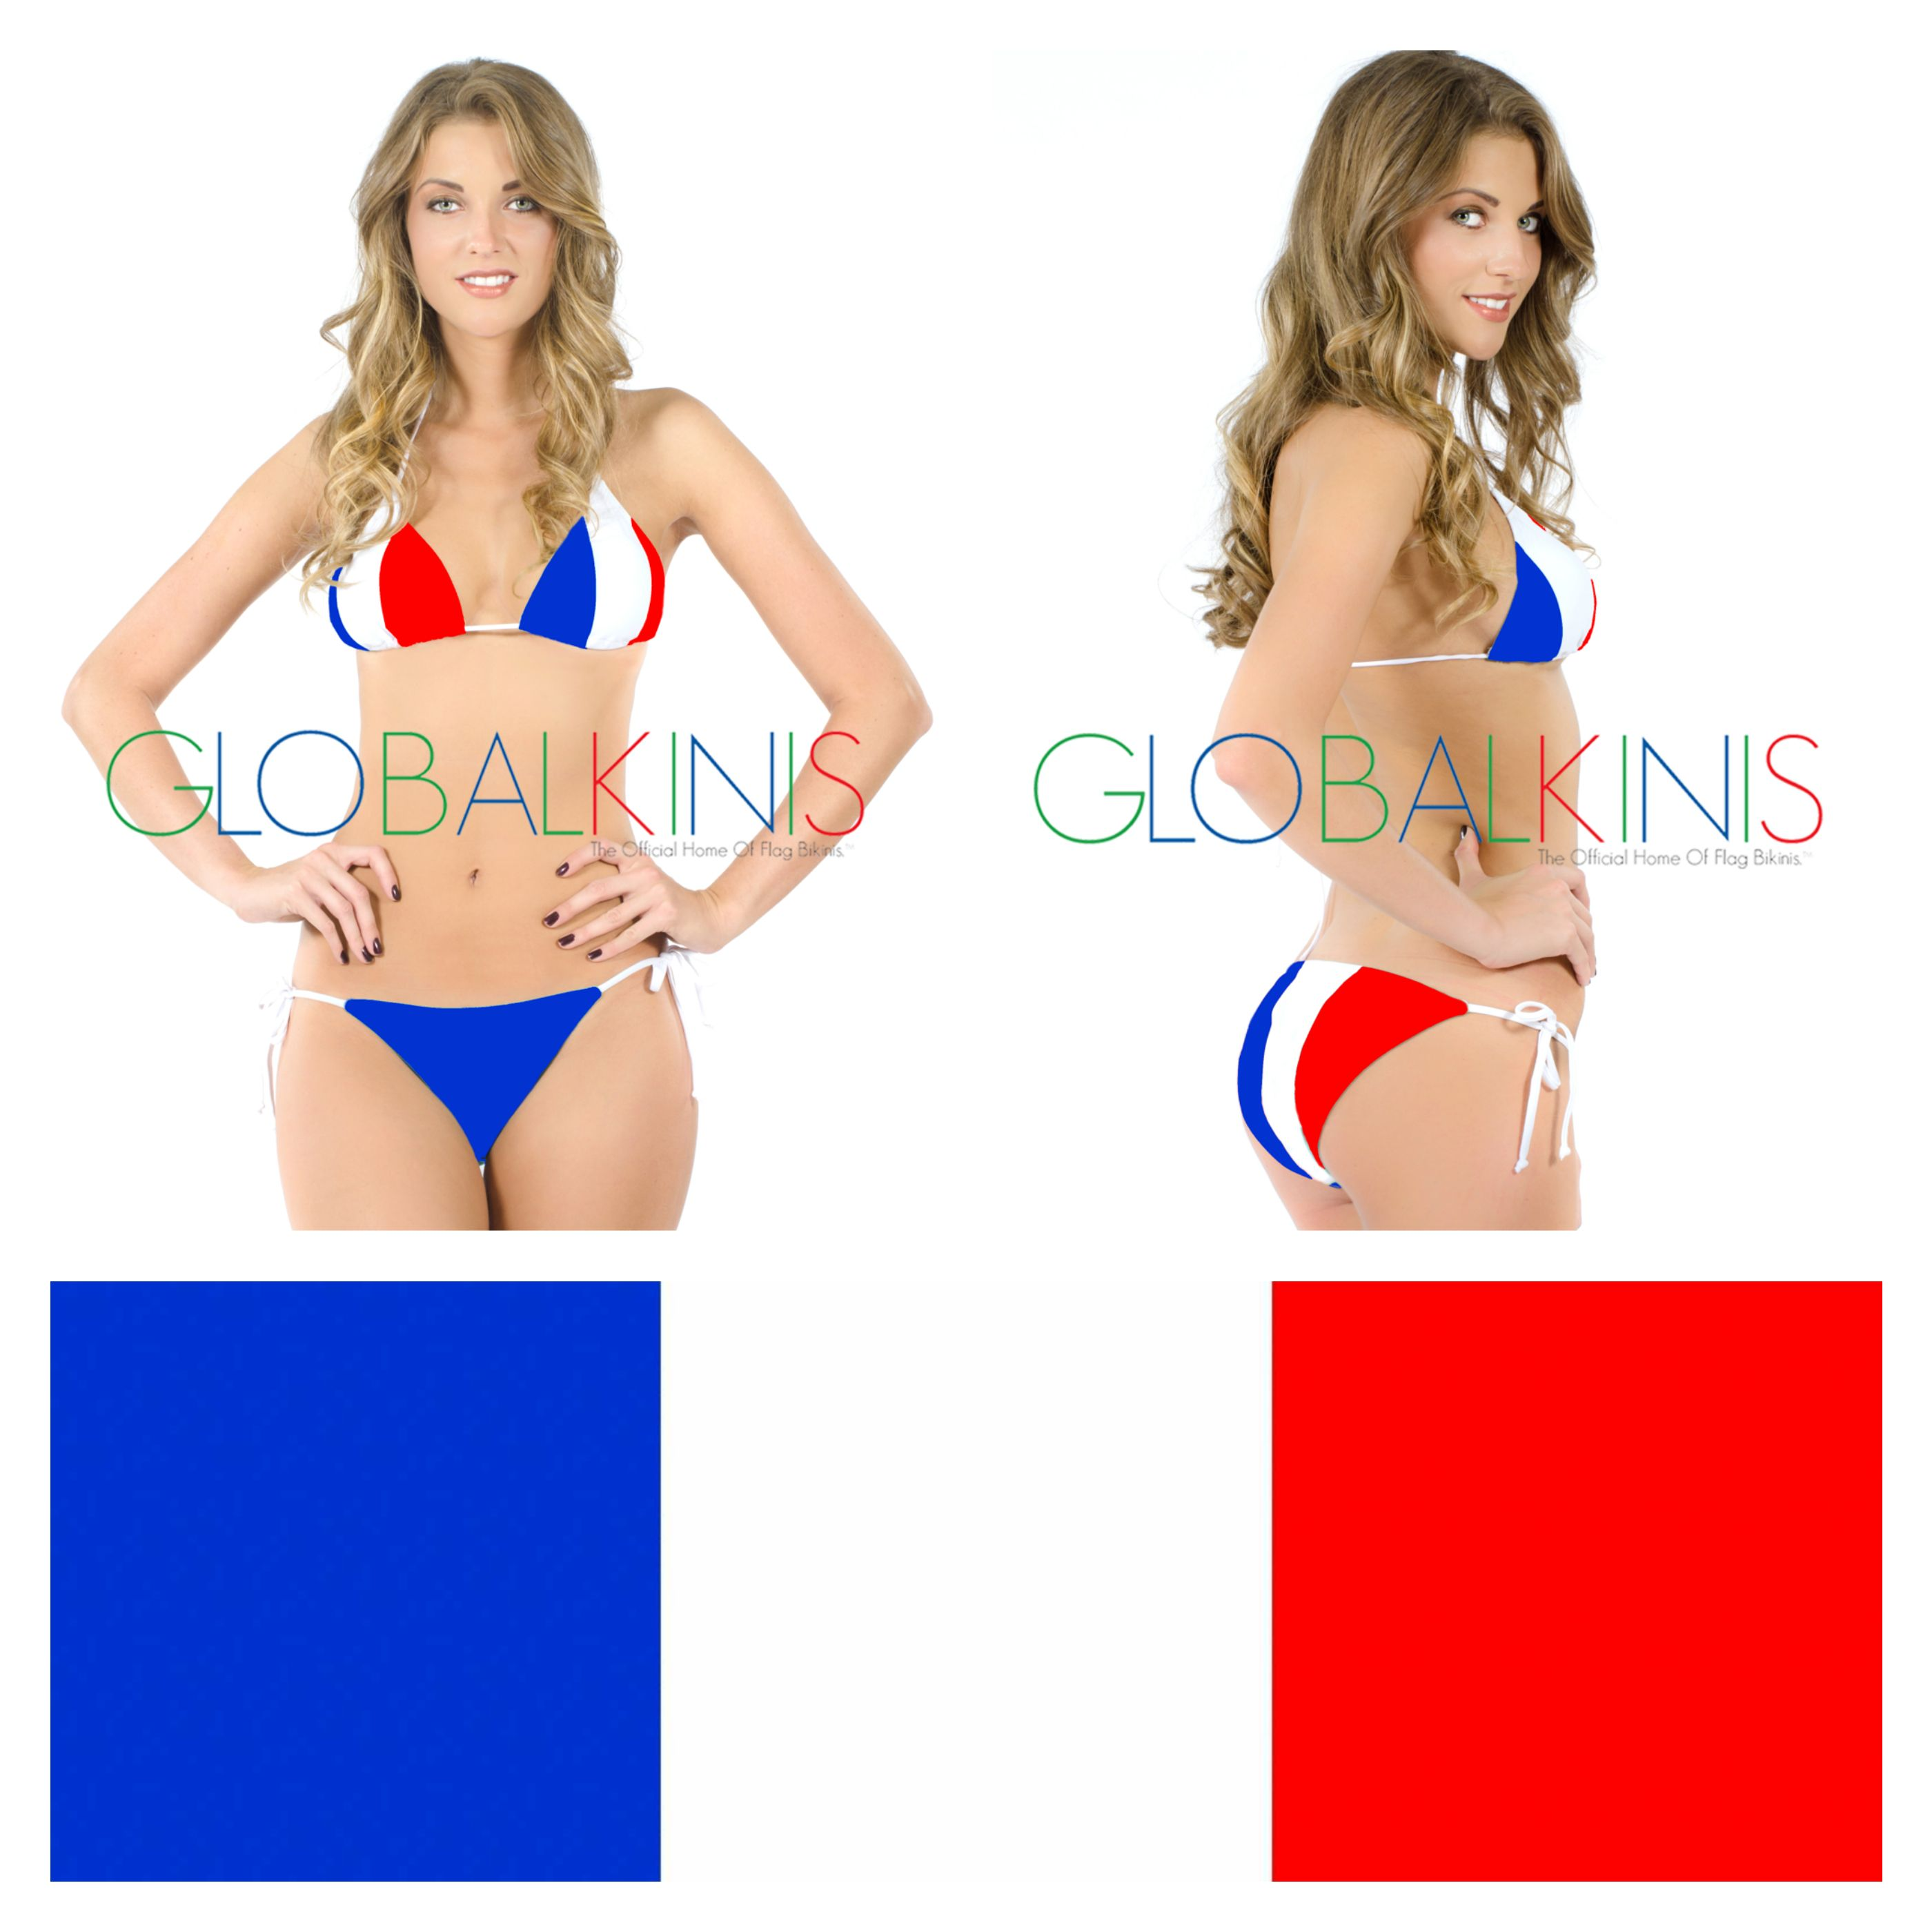 trick or treat new flag bikinis have arrived globalkinis would